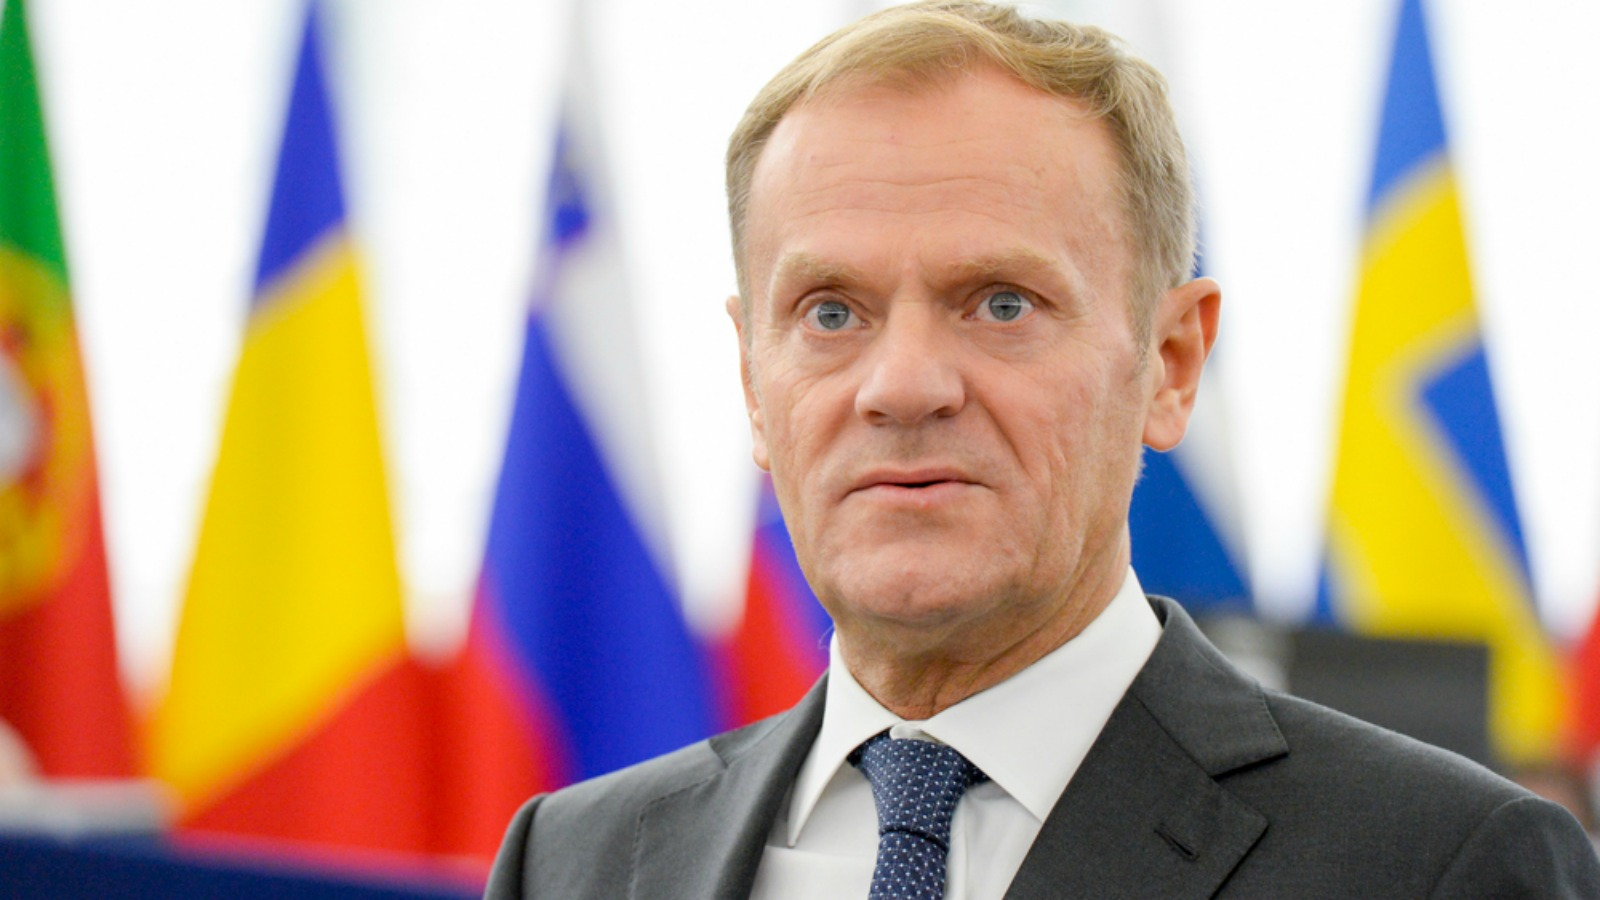 Don't unscrew Poland from the EU,' Tusk tells Warsaw